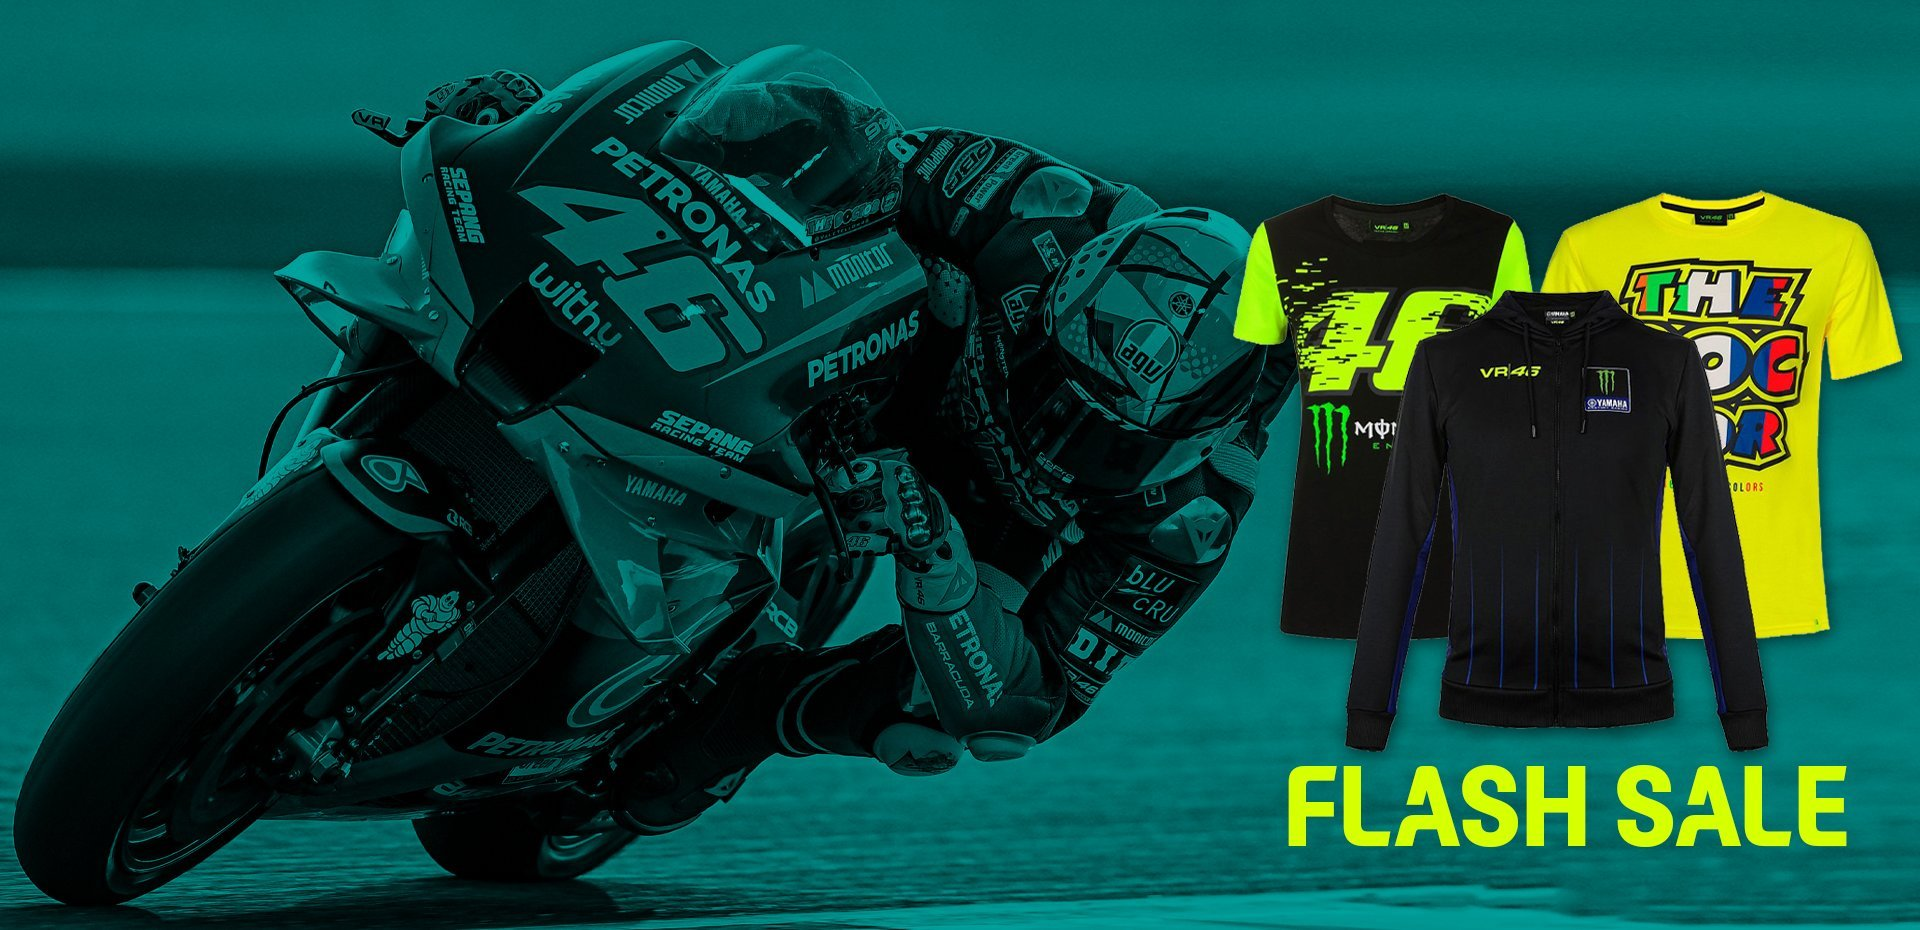 Up to 50% OFF on VR46's collection